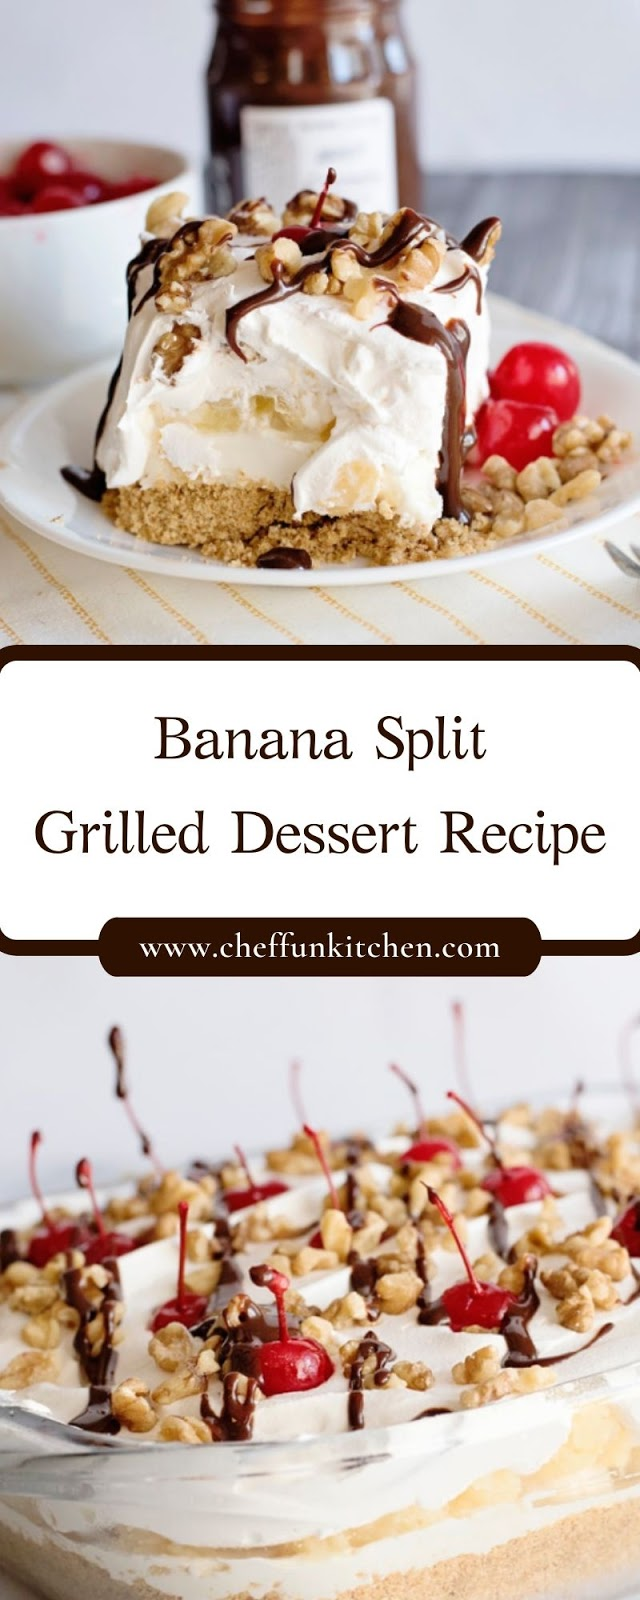 Banana Split Grilled Dessert Recipe